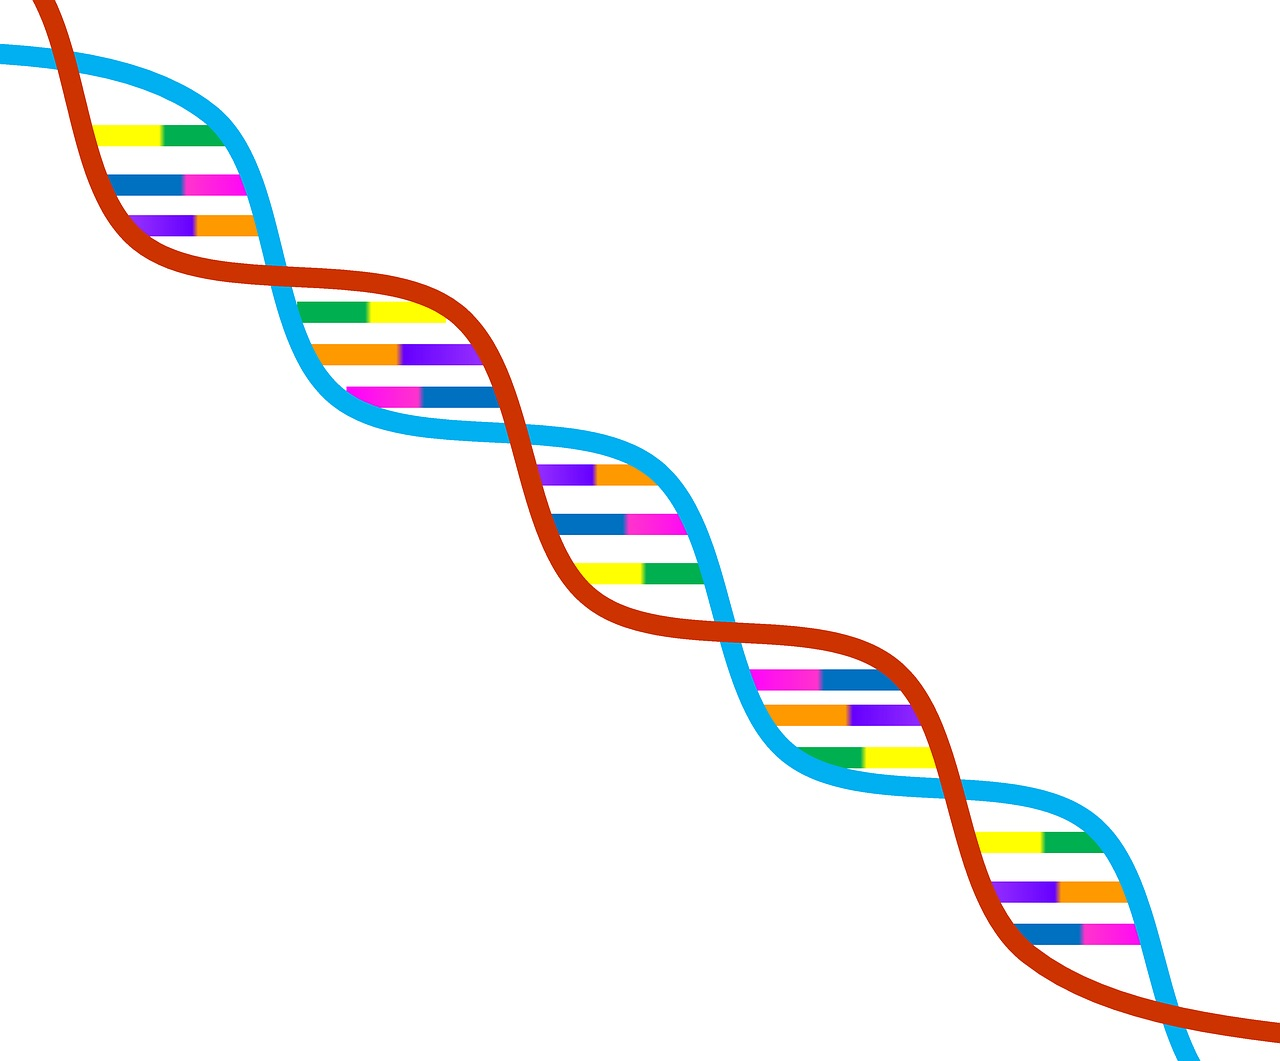 dna-image from Pixabay free to reuse